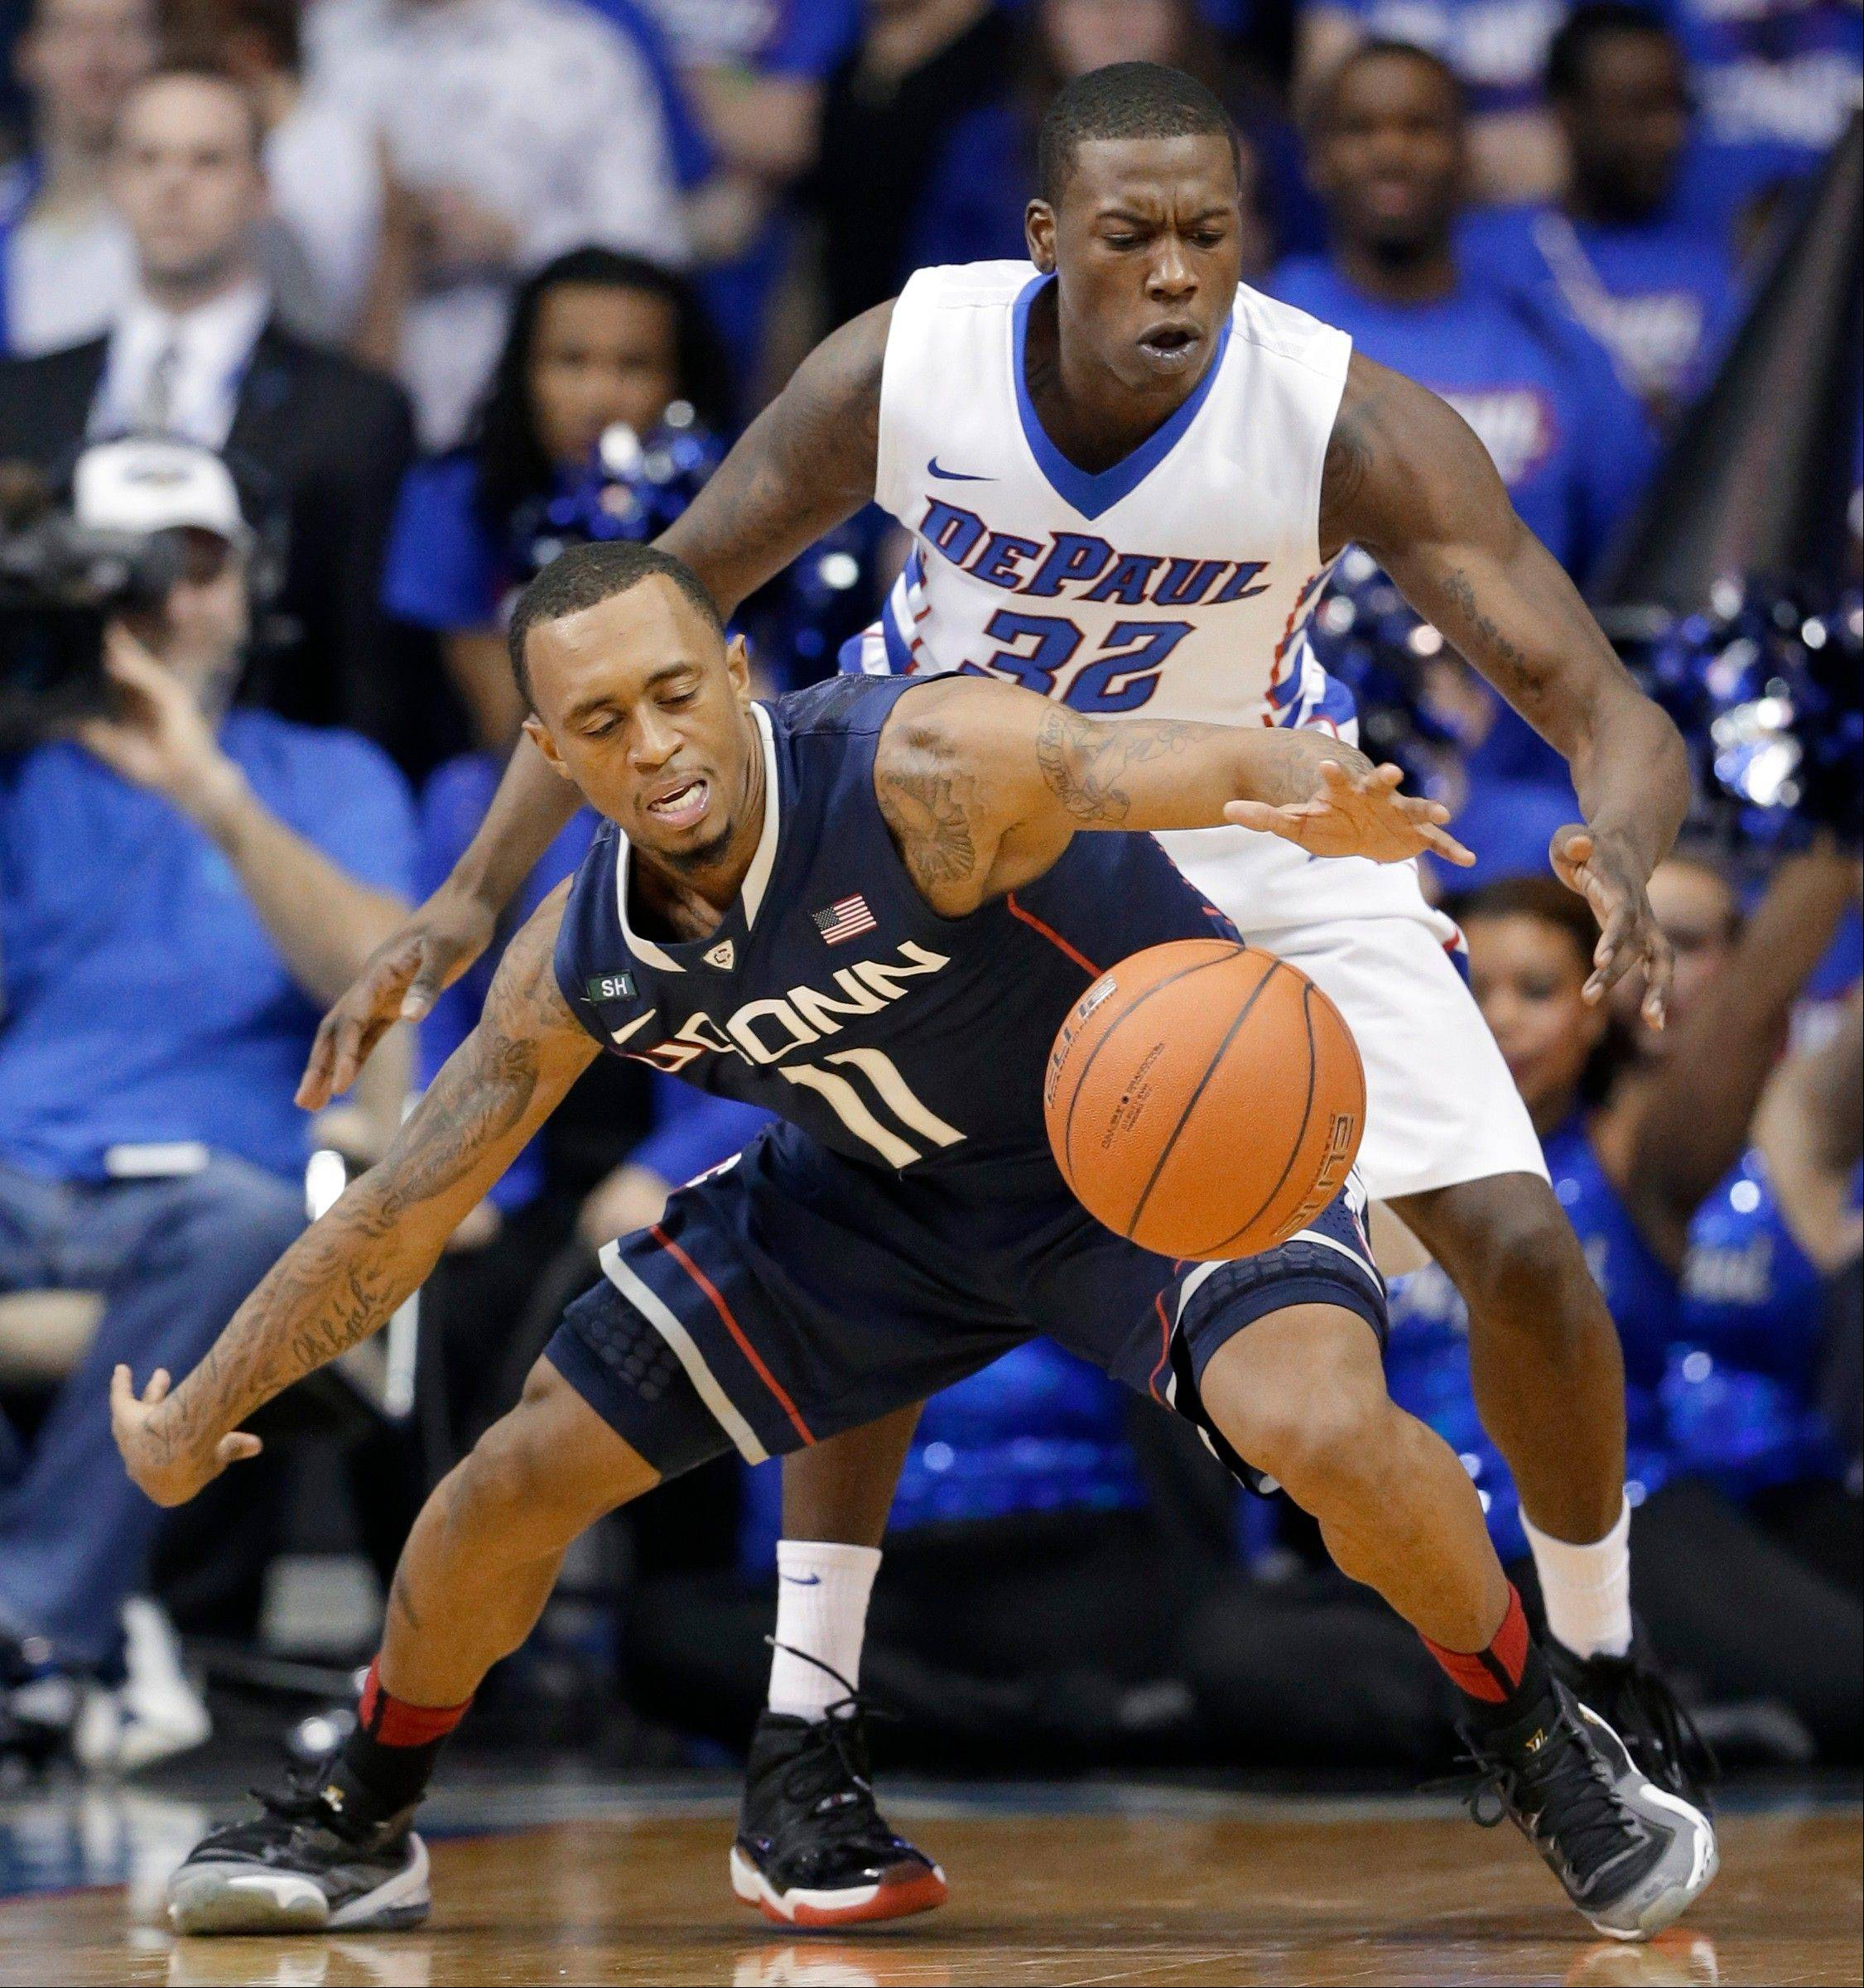 Connecticut guard Ryan Boatright (11) — who is from Aurora — controls the ball against DePaul guard Charles McKinney (32) during the game Saturday night in Rosemont. Connecticut won 81-69.